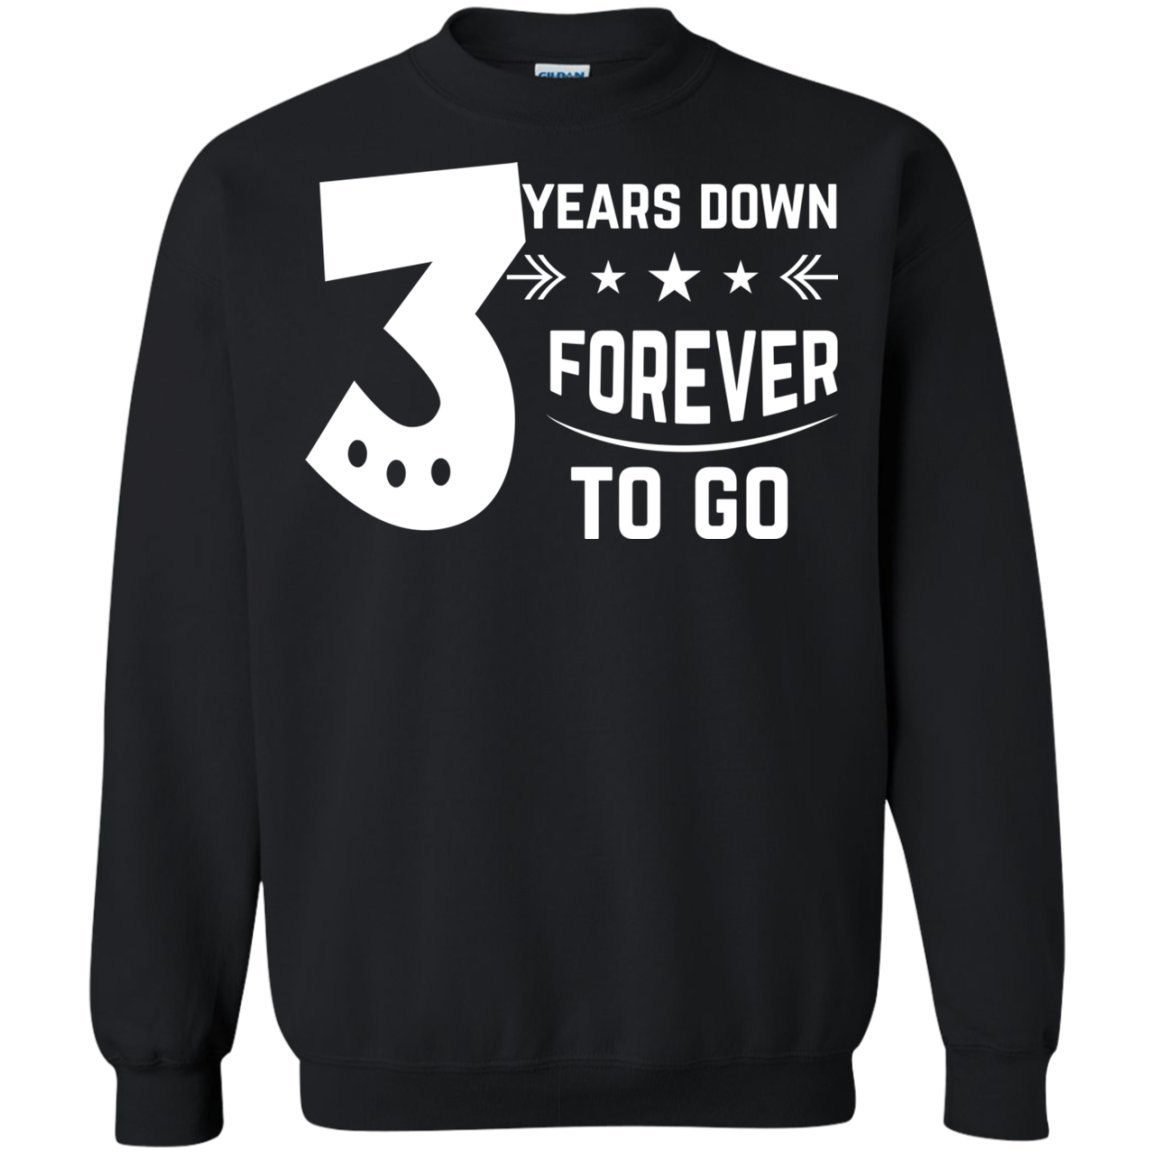 Funny Gift Birthday Awesome Tee 3rd Wedding Anniversary Gift 3 Years Down Forever T-Shirt Sweatshirt